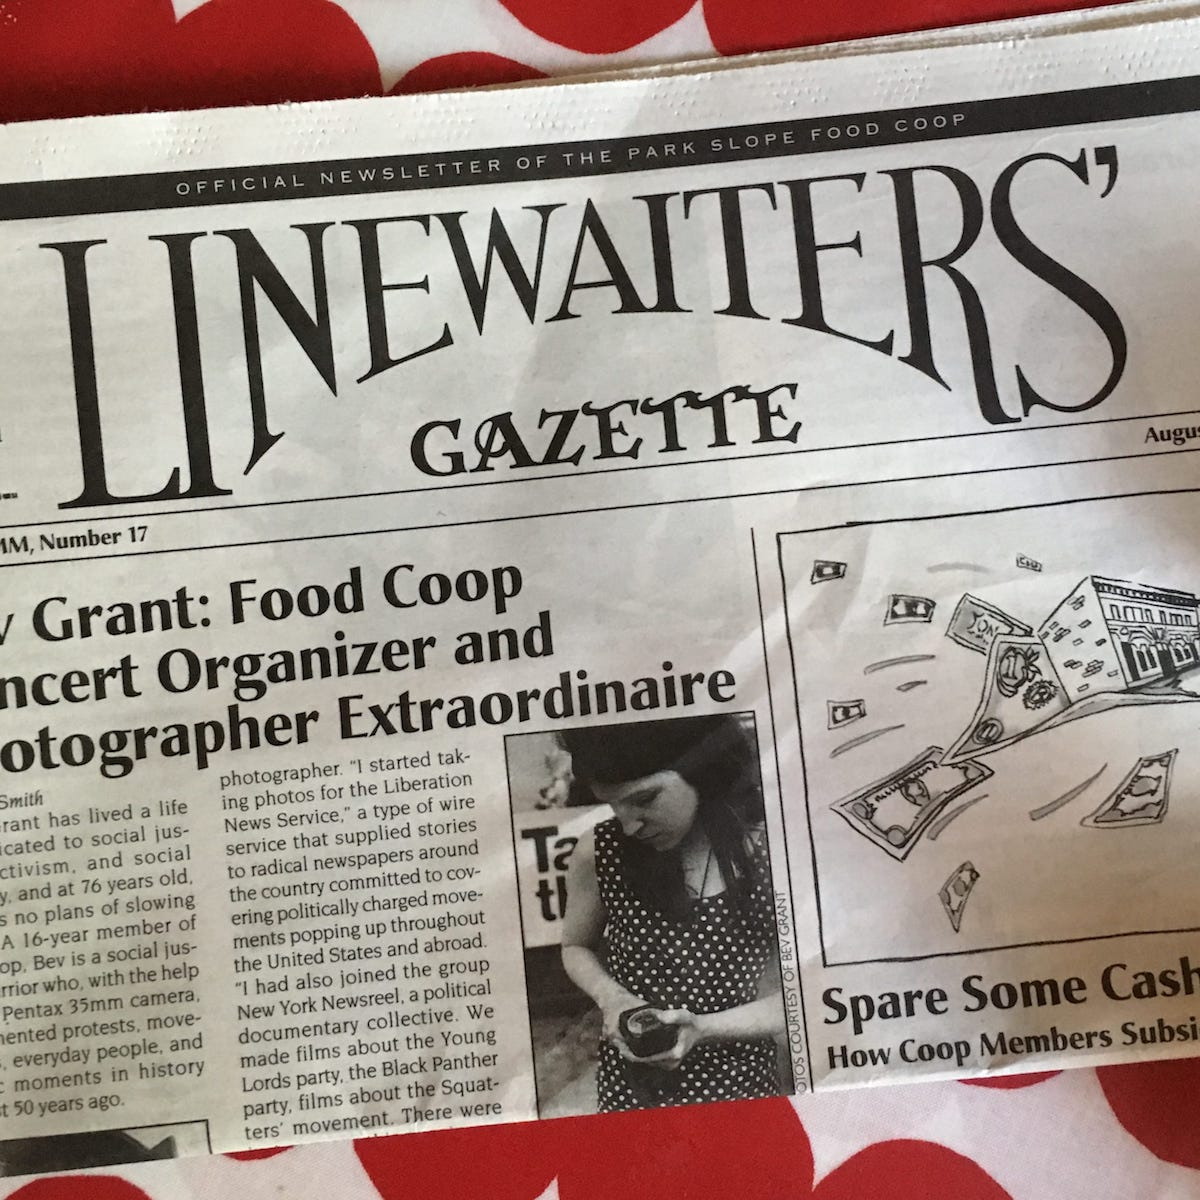 Photo of Park Slope Food Coop Newspaper - The Linewaiters' Gazette